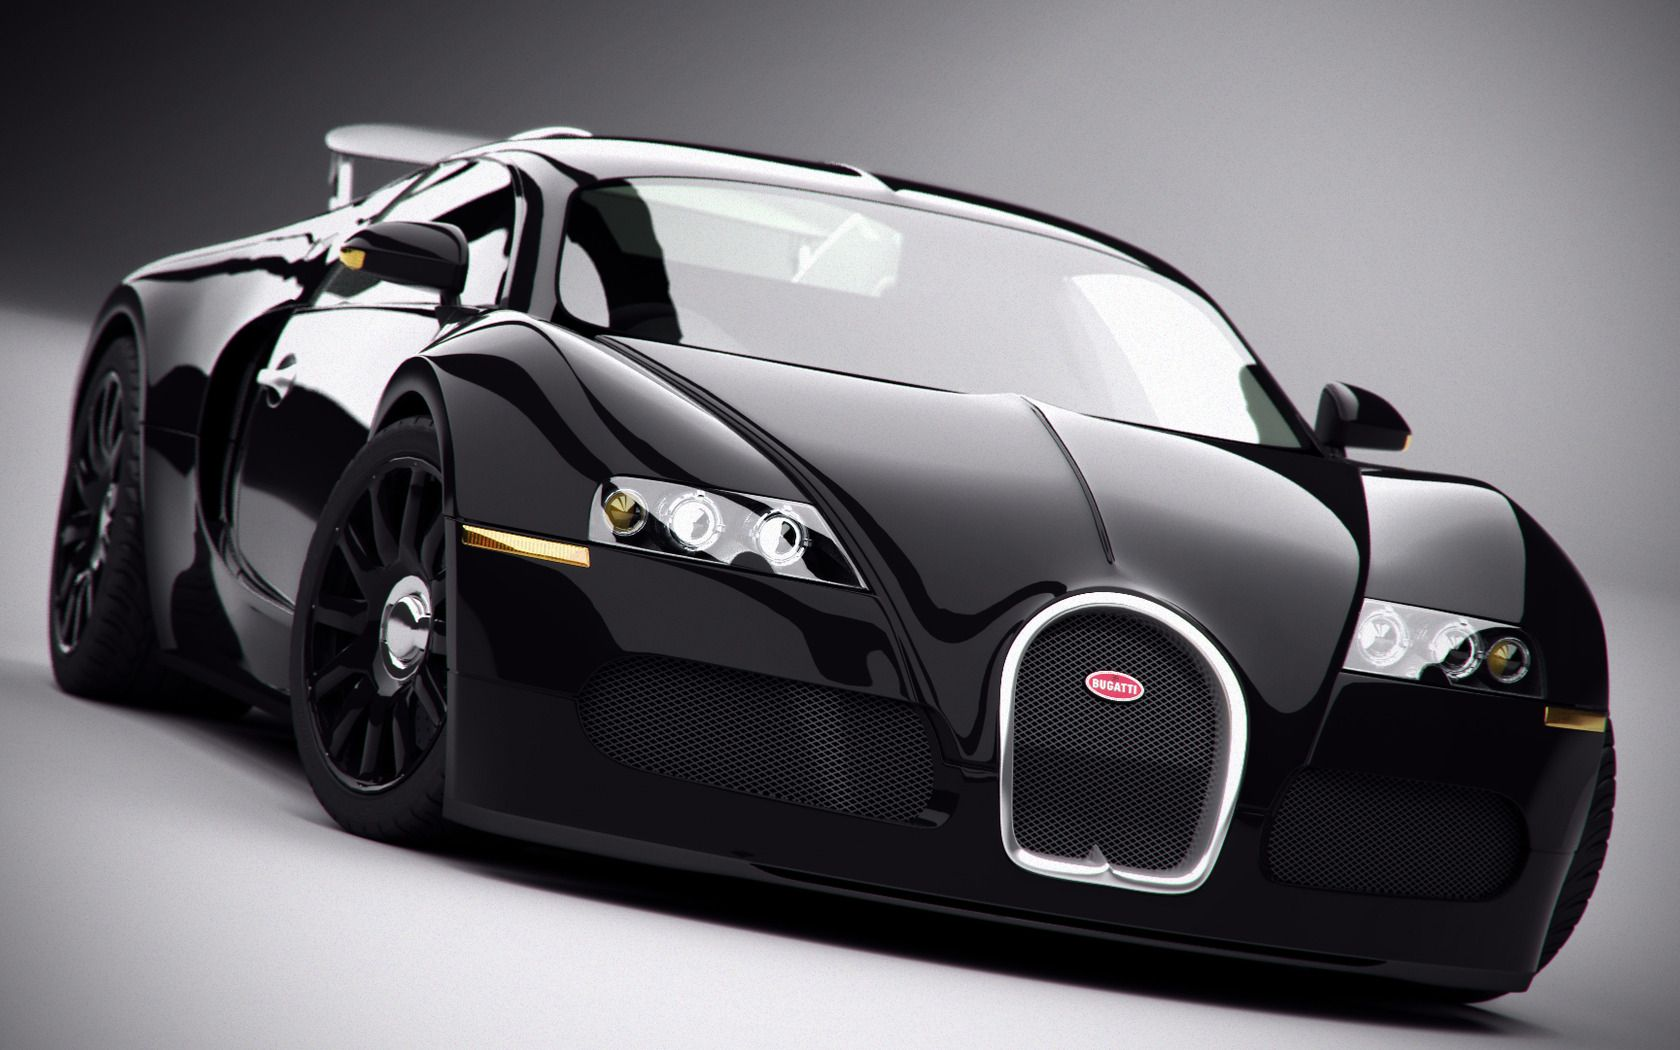 Bugatti Veyron The Fastest Car Goes Zero To 60 In 2 4 Seconds And Costs Around 2 Million Dollars Bugatti Cars Bugatti Veyron Bugatti Veyron Black